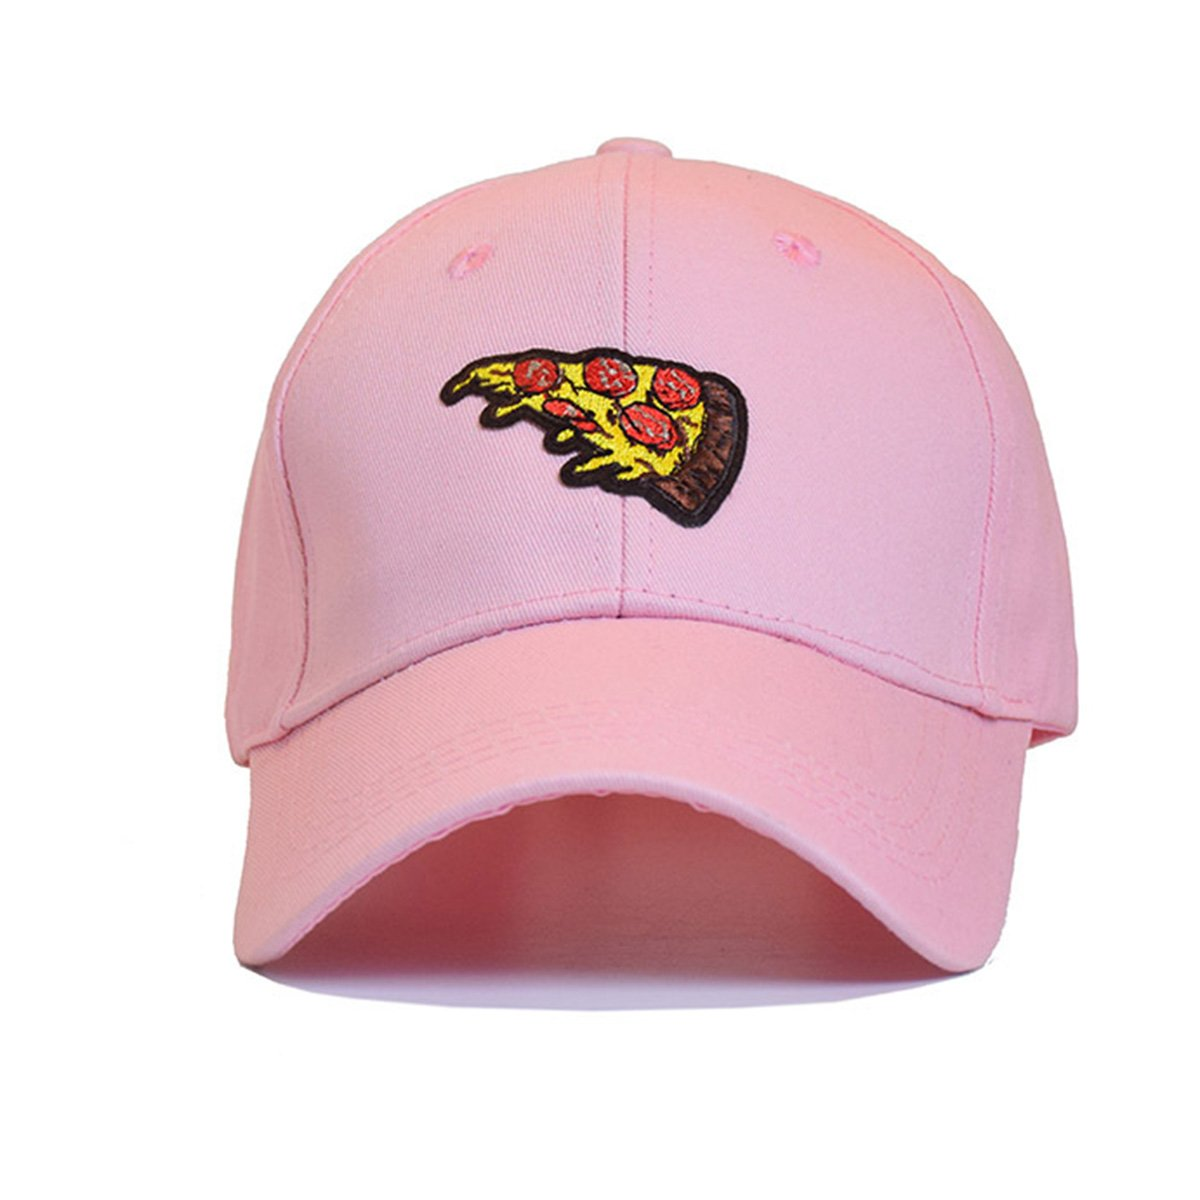 Himozoo 2019 Pizza Embroidery Baseball Cap for Women Men Unisex Adjustable Dad Hats